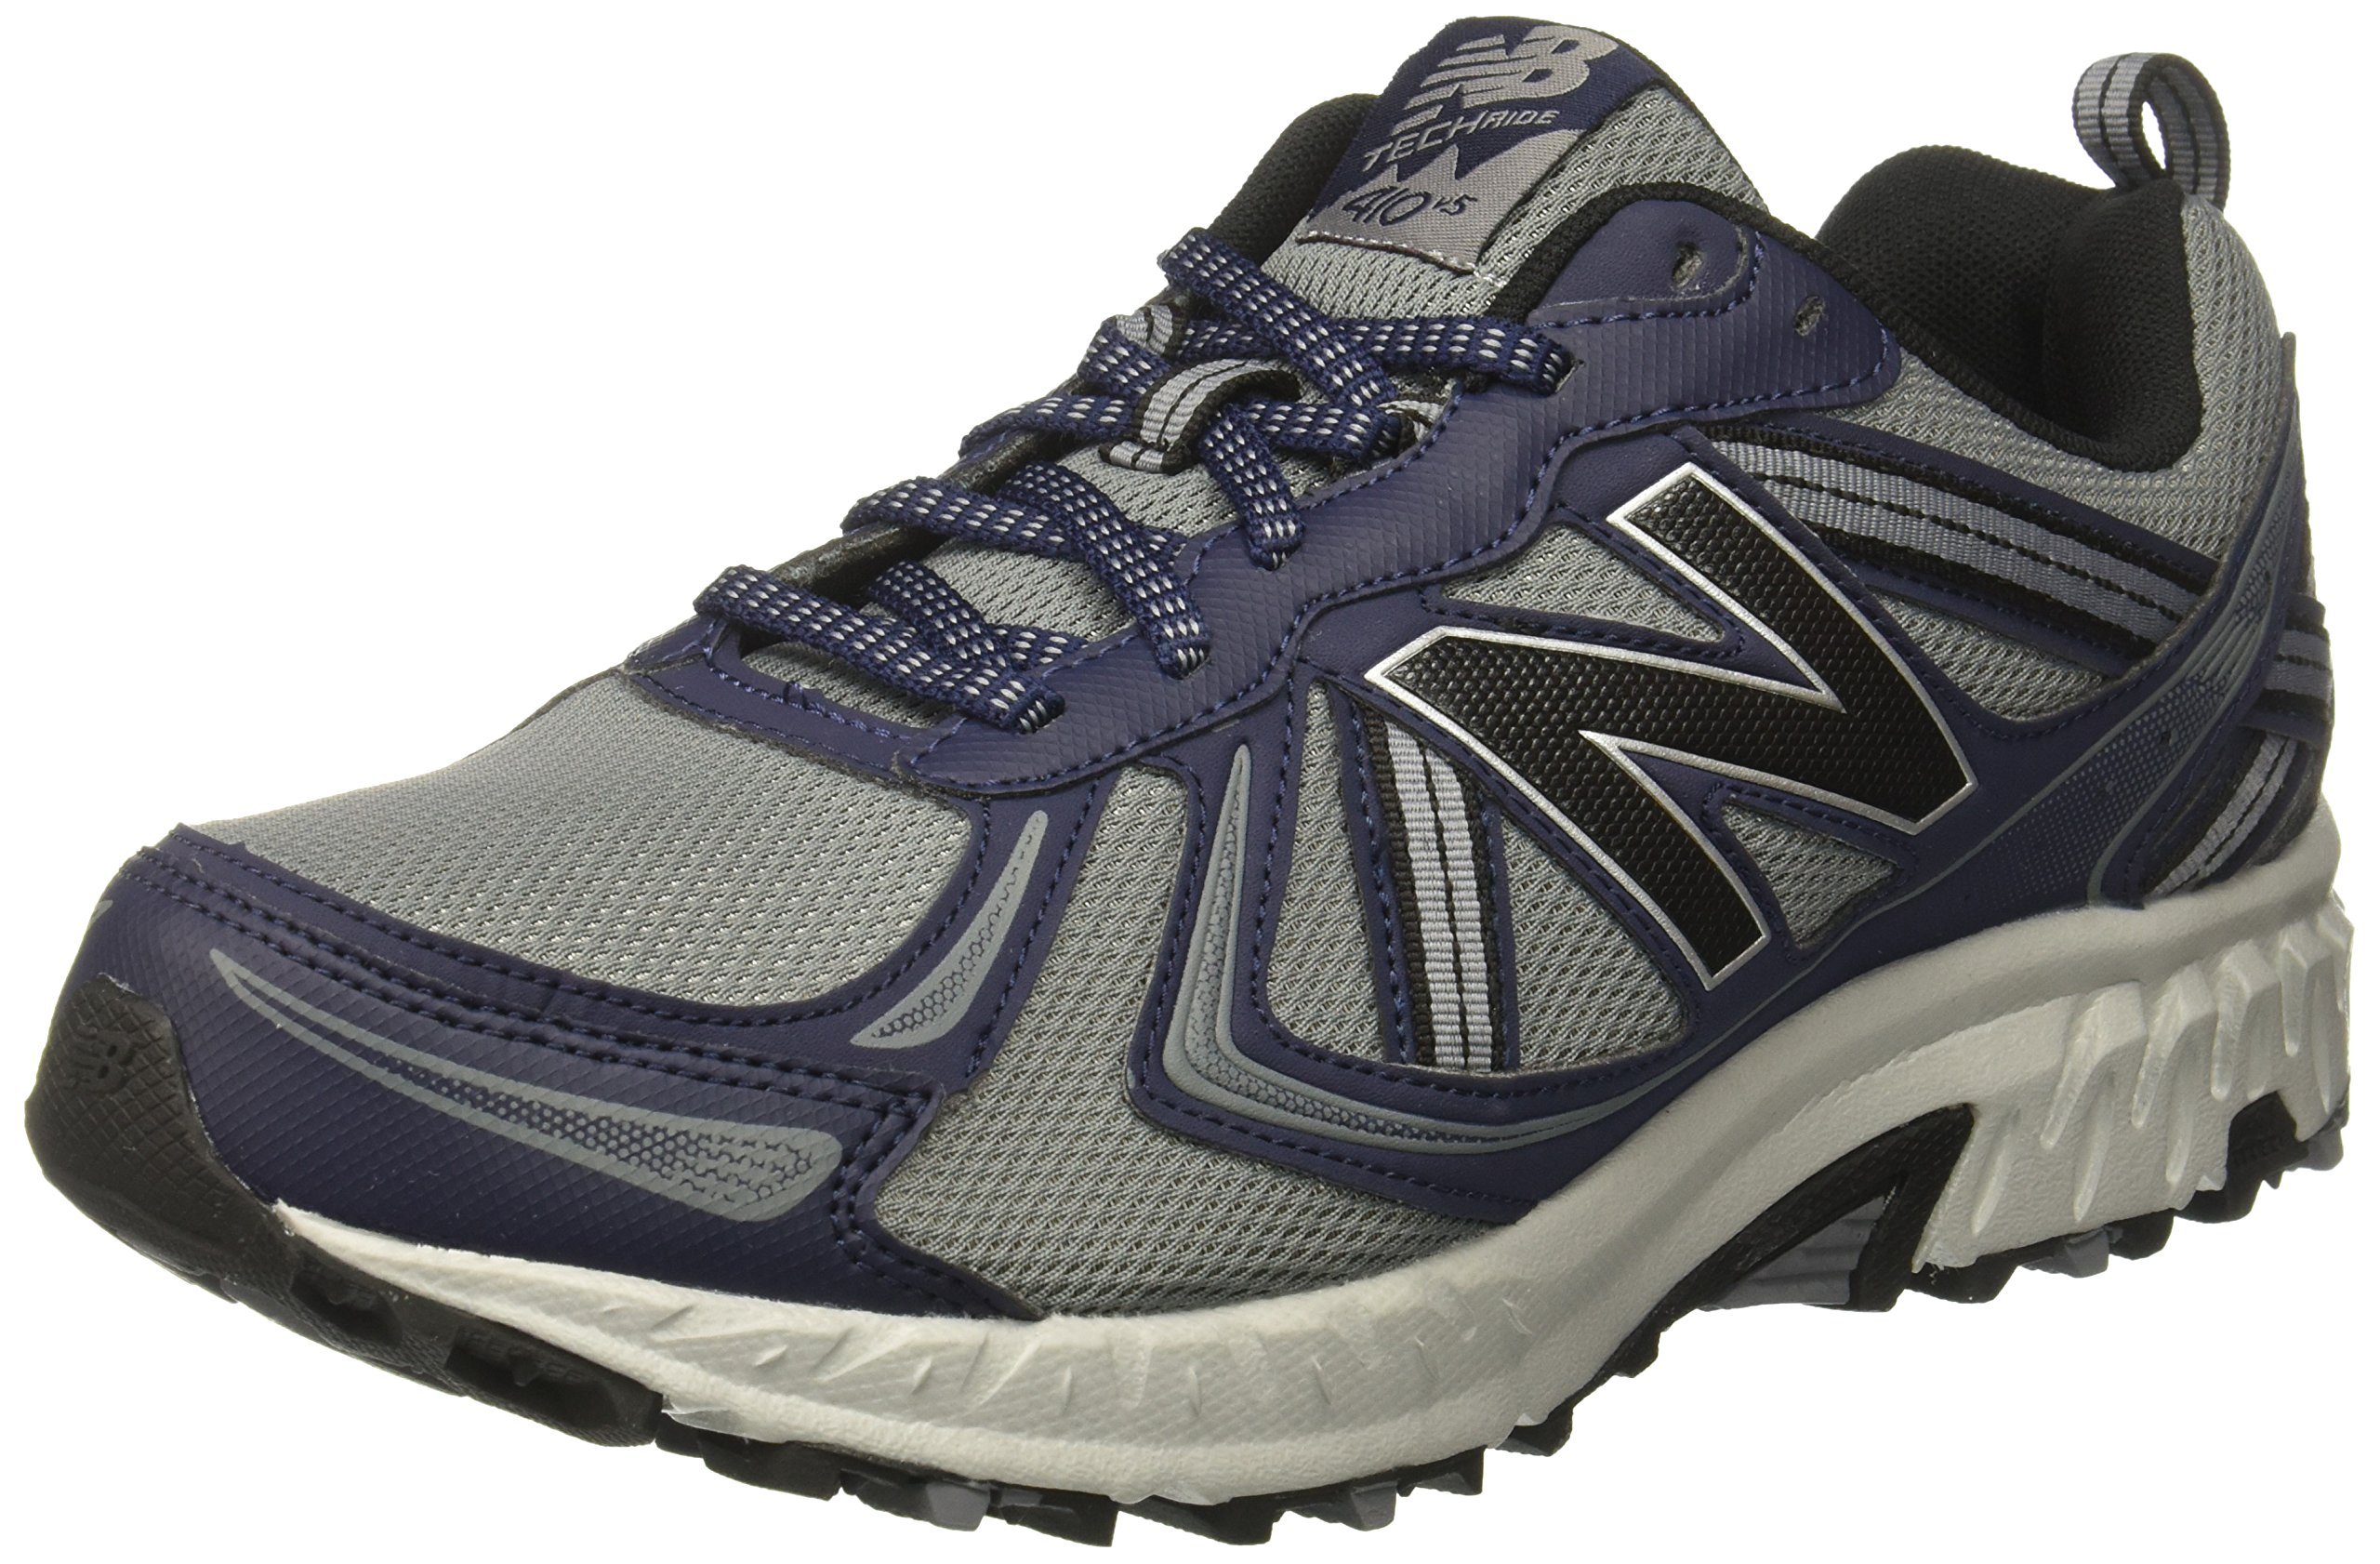 New Balance Men's MT410v5 Cushioning Trail Running Shoe, Grey, 10 D US by New Balance